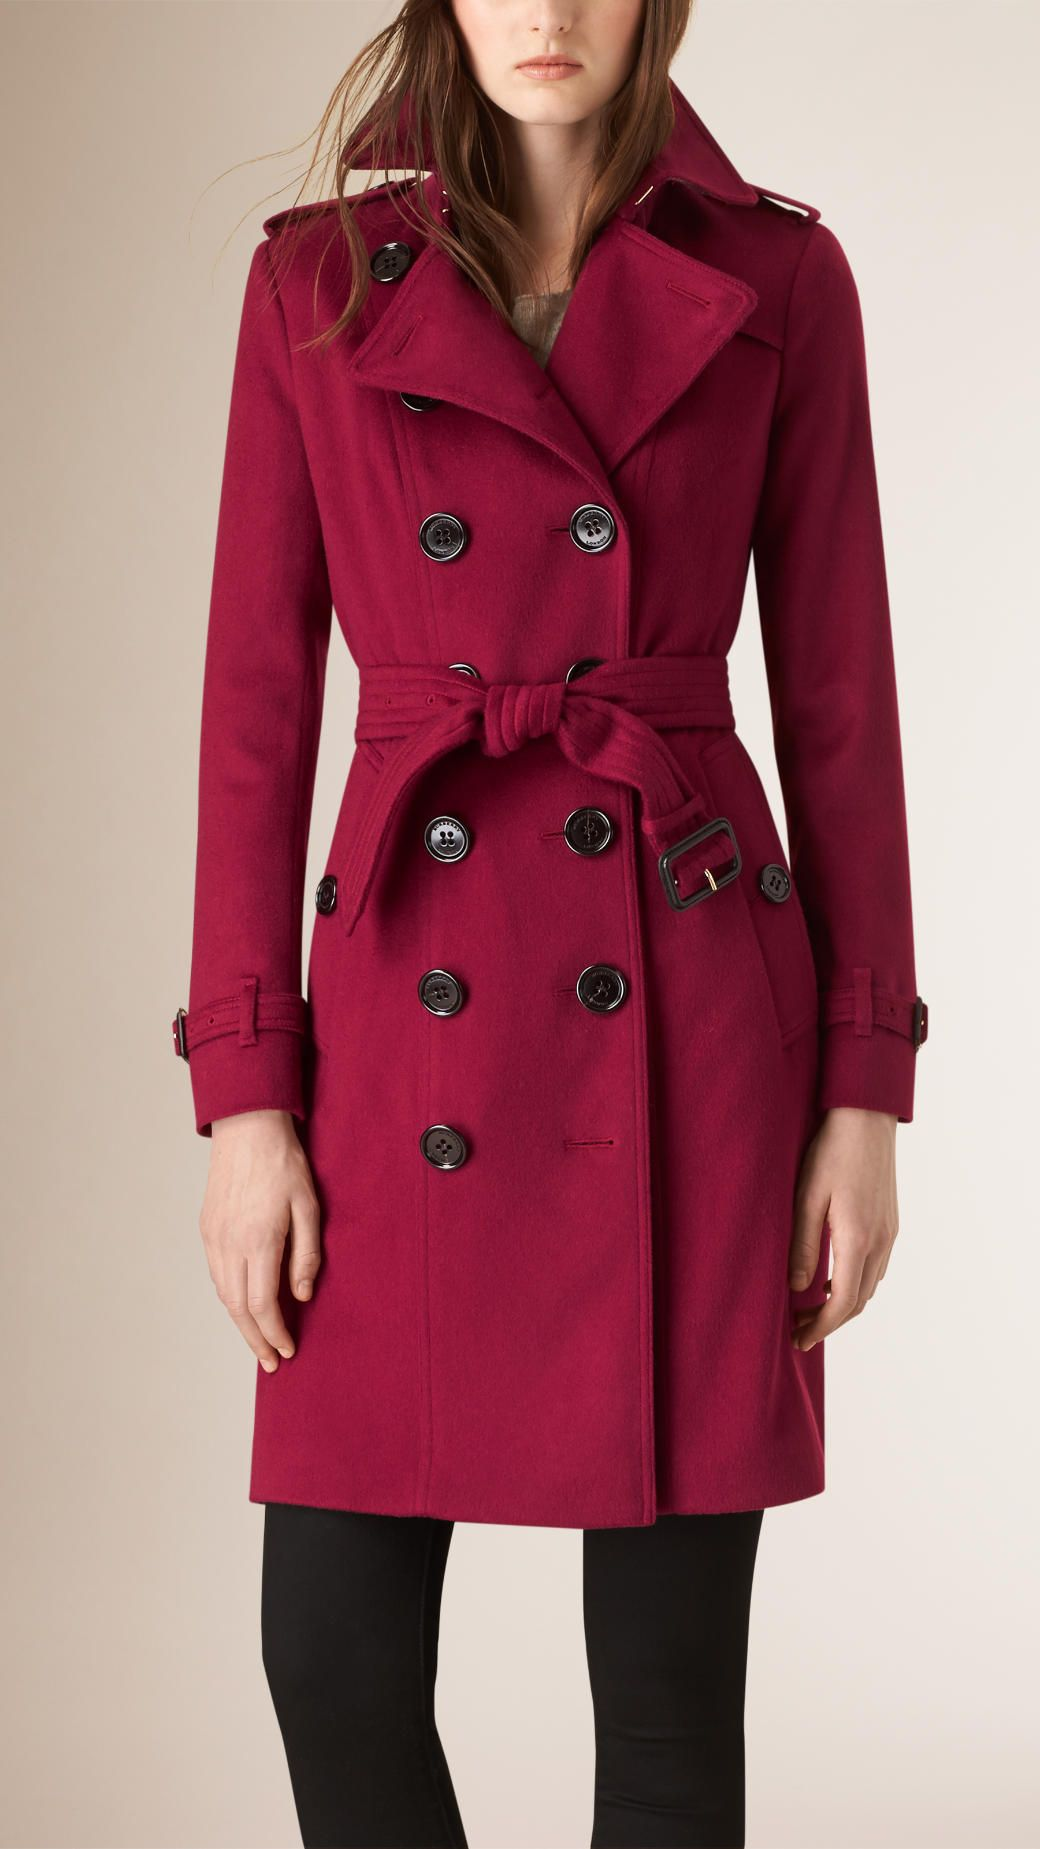 Sandringham Fit Cashmere Trench Coat Cherry Pink   Burberry ...